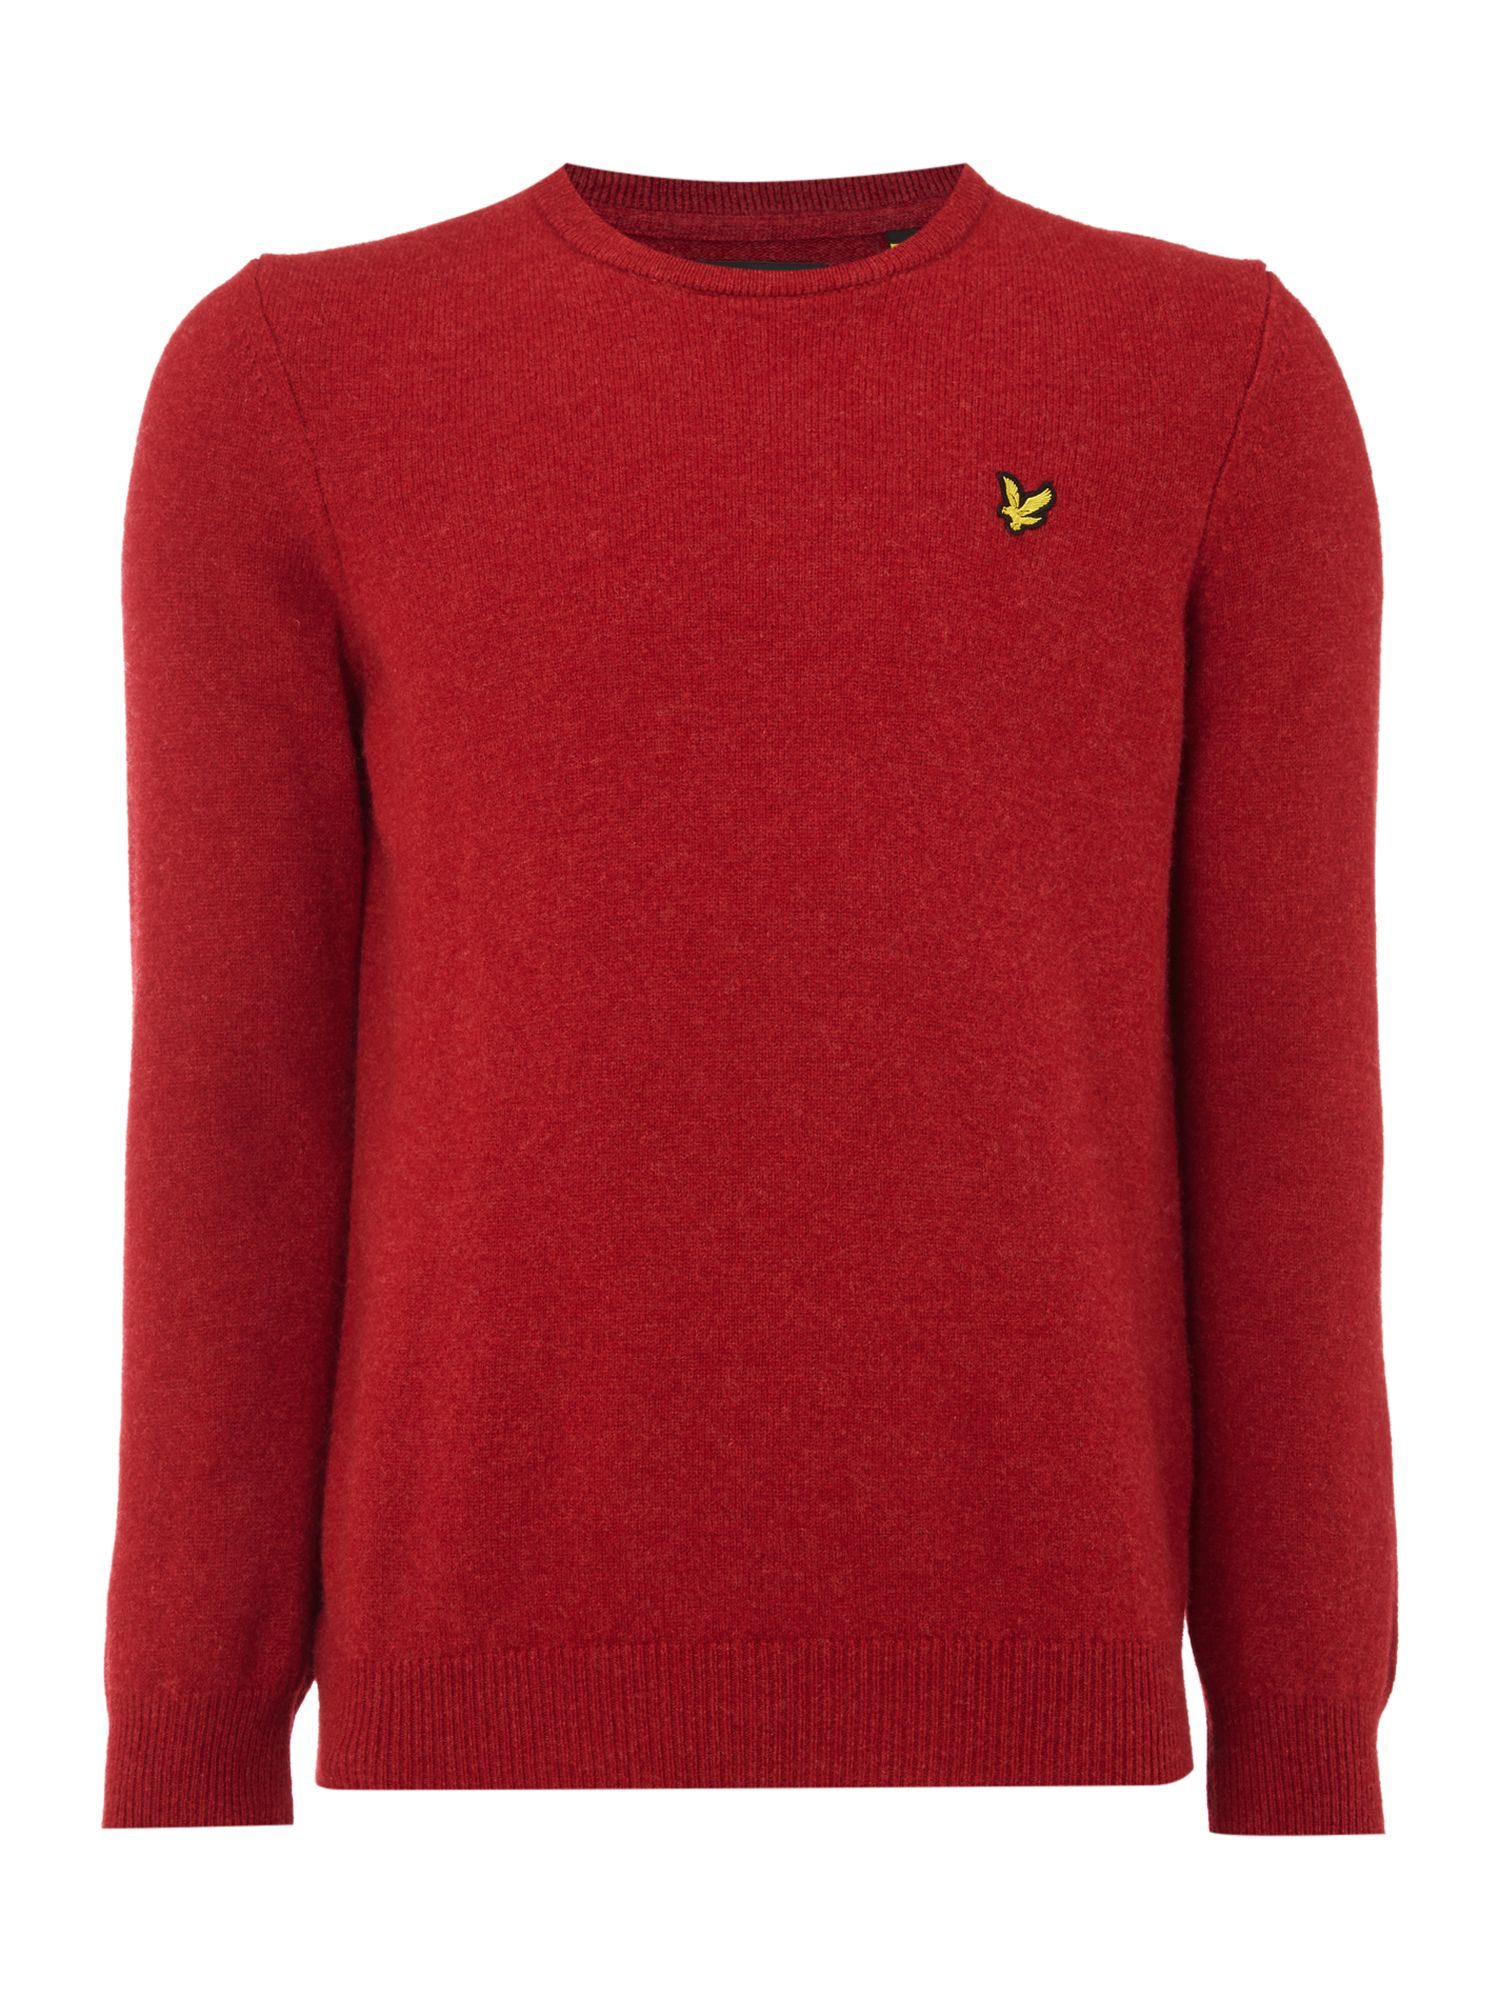 Lyle and Scott Men's Lyle and Scott Lambswool Crew Neck Jumper, Red Marl